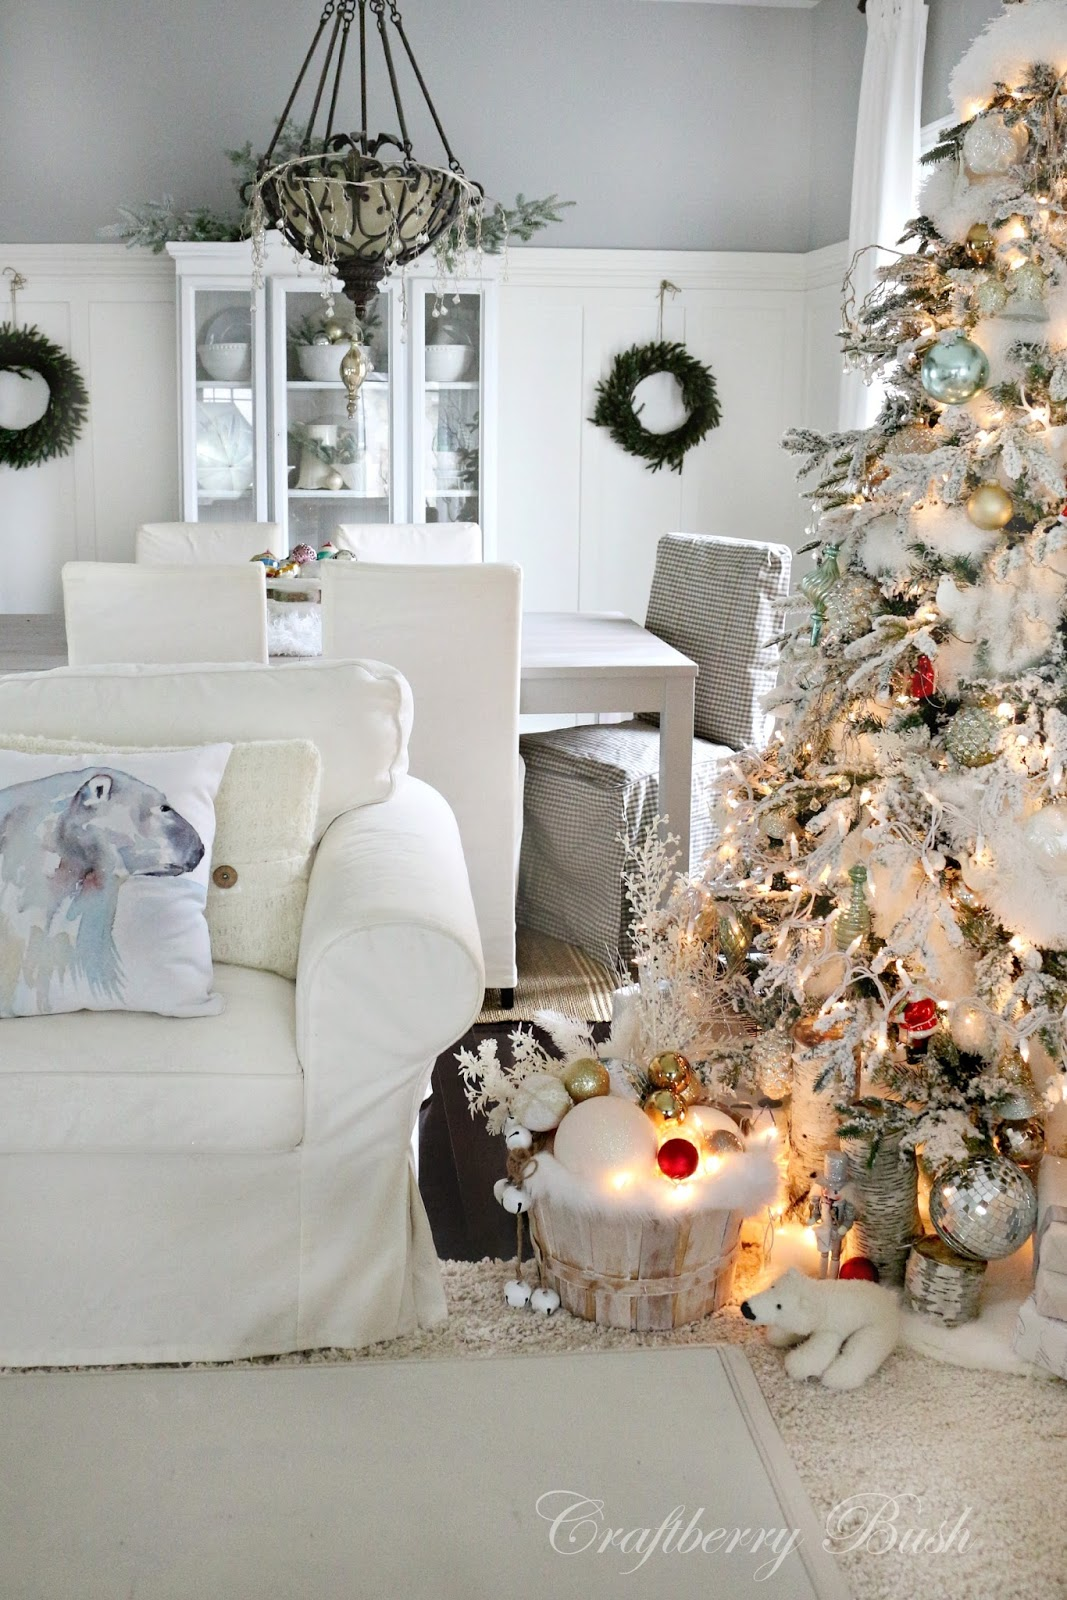 Christmas home decor ideas the 36th avenue for Christmas decorations for home interior